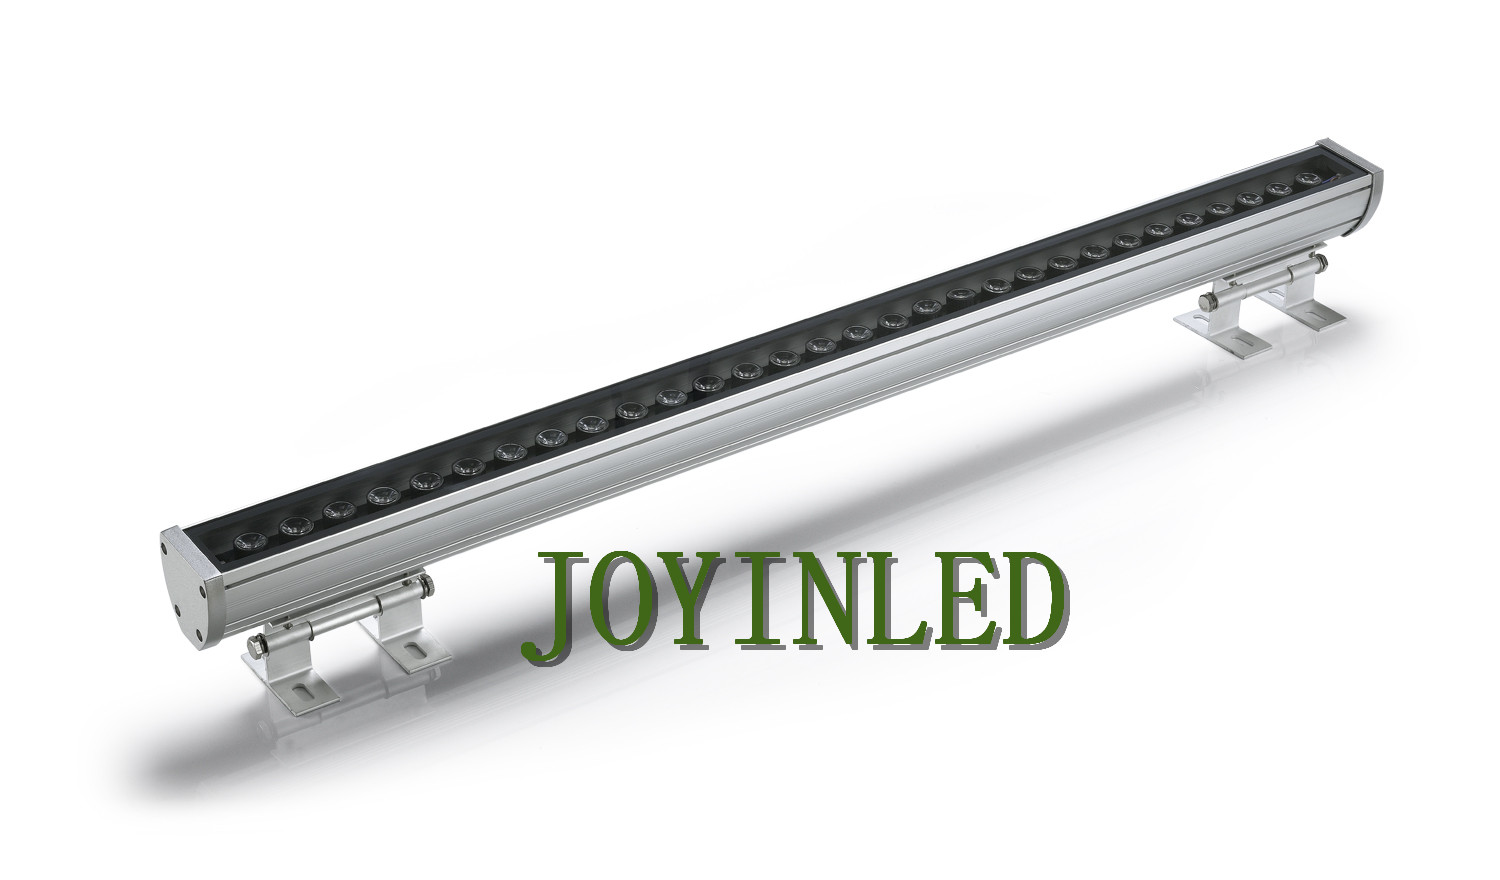 Us 3459 2 6 Off 36w Led Wall Washer Light Lamps 62 63 1000mm Outdoor Waterproof Landscape Linear Bar Lamp Warmwhite White Rgb In Floodlights